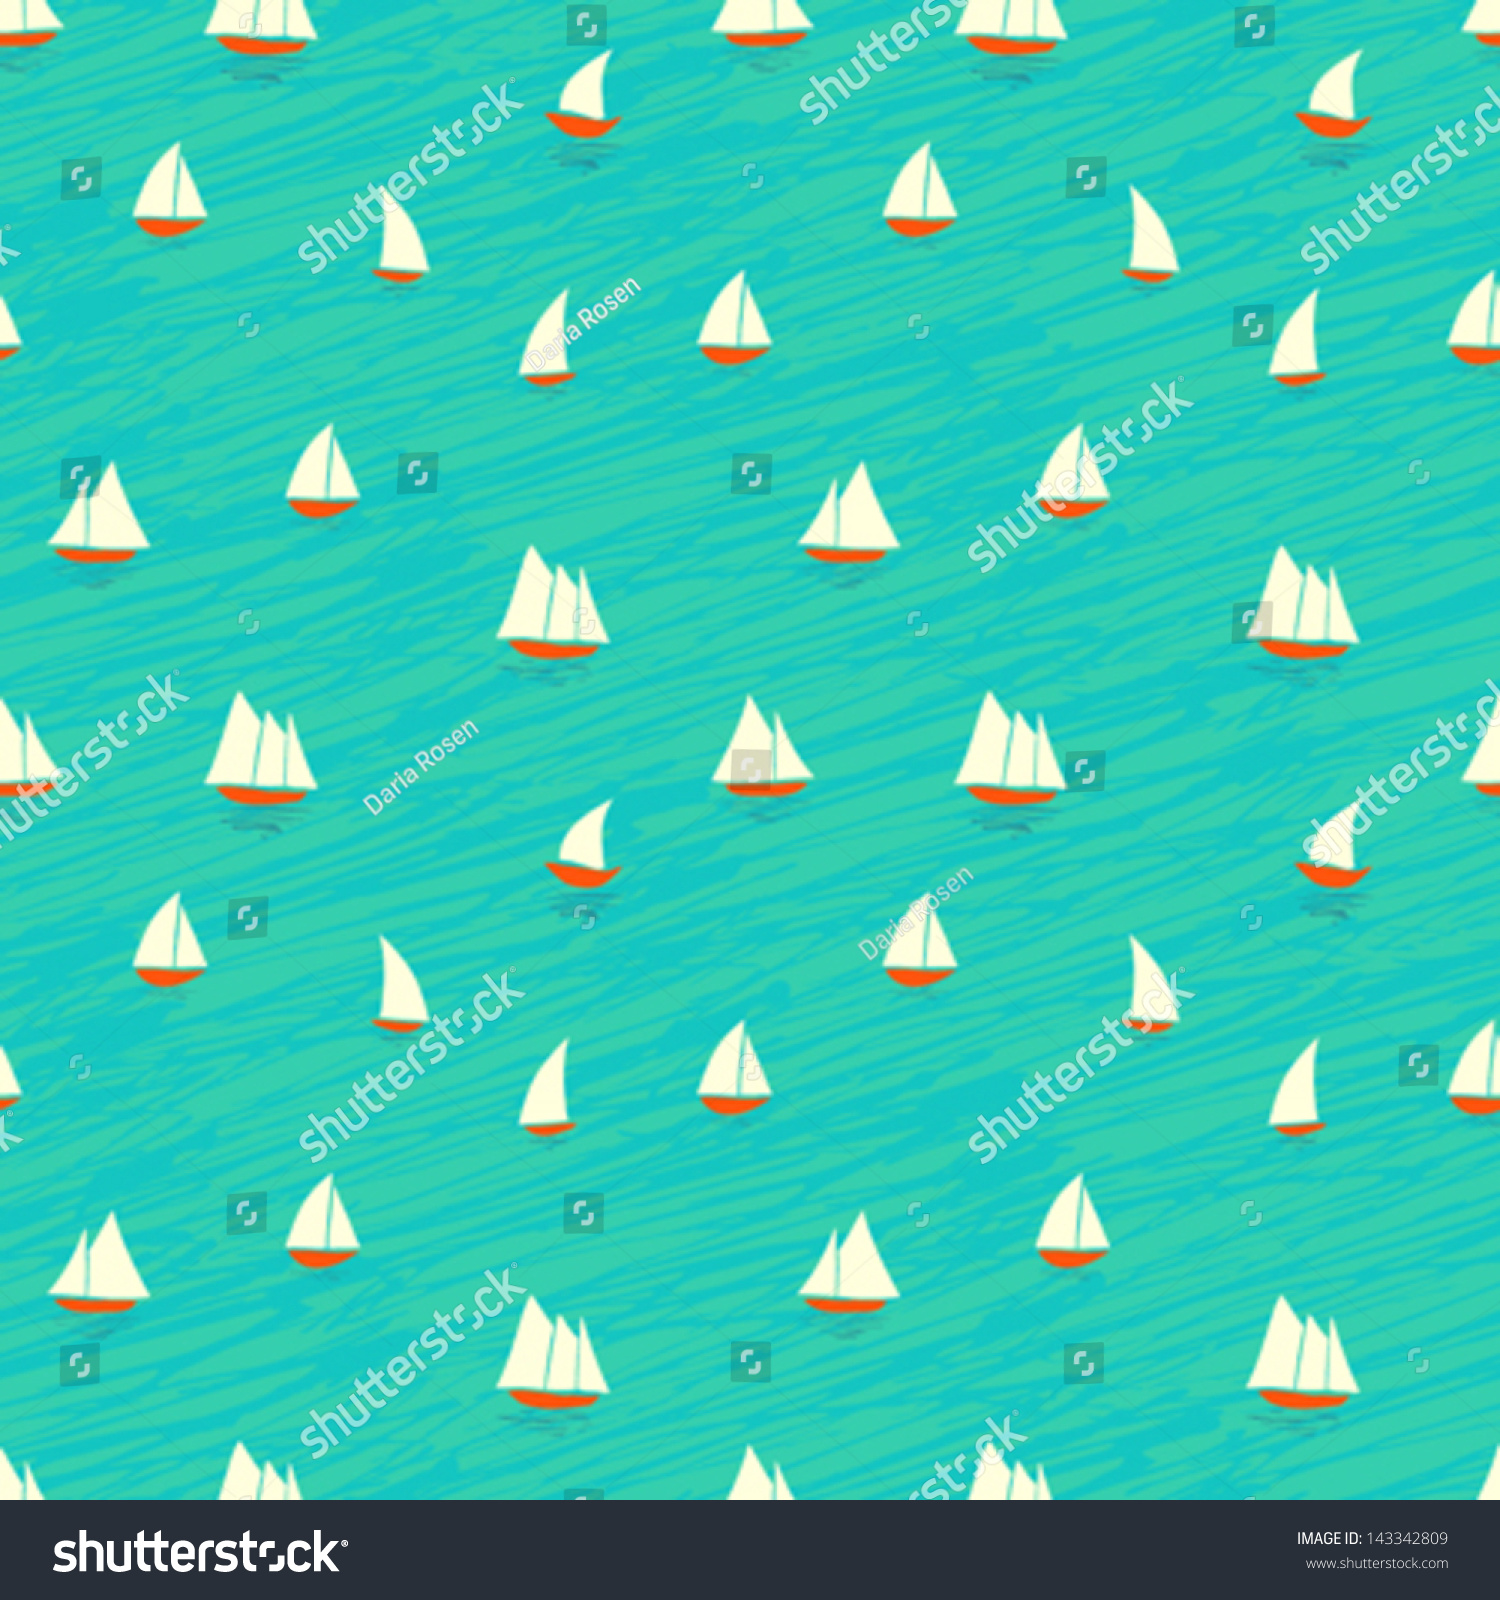 Nautical Home Decor Fabric Nautical Pattern Inspired Small Boats On Stock Vector 143342809